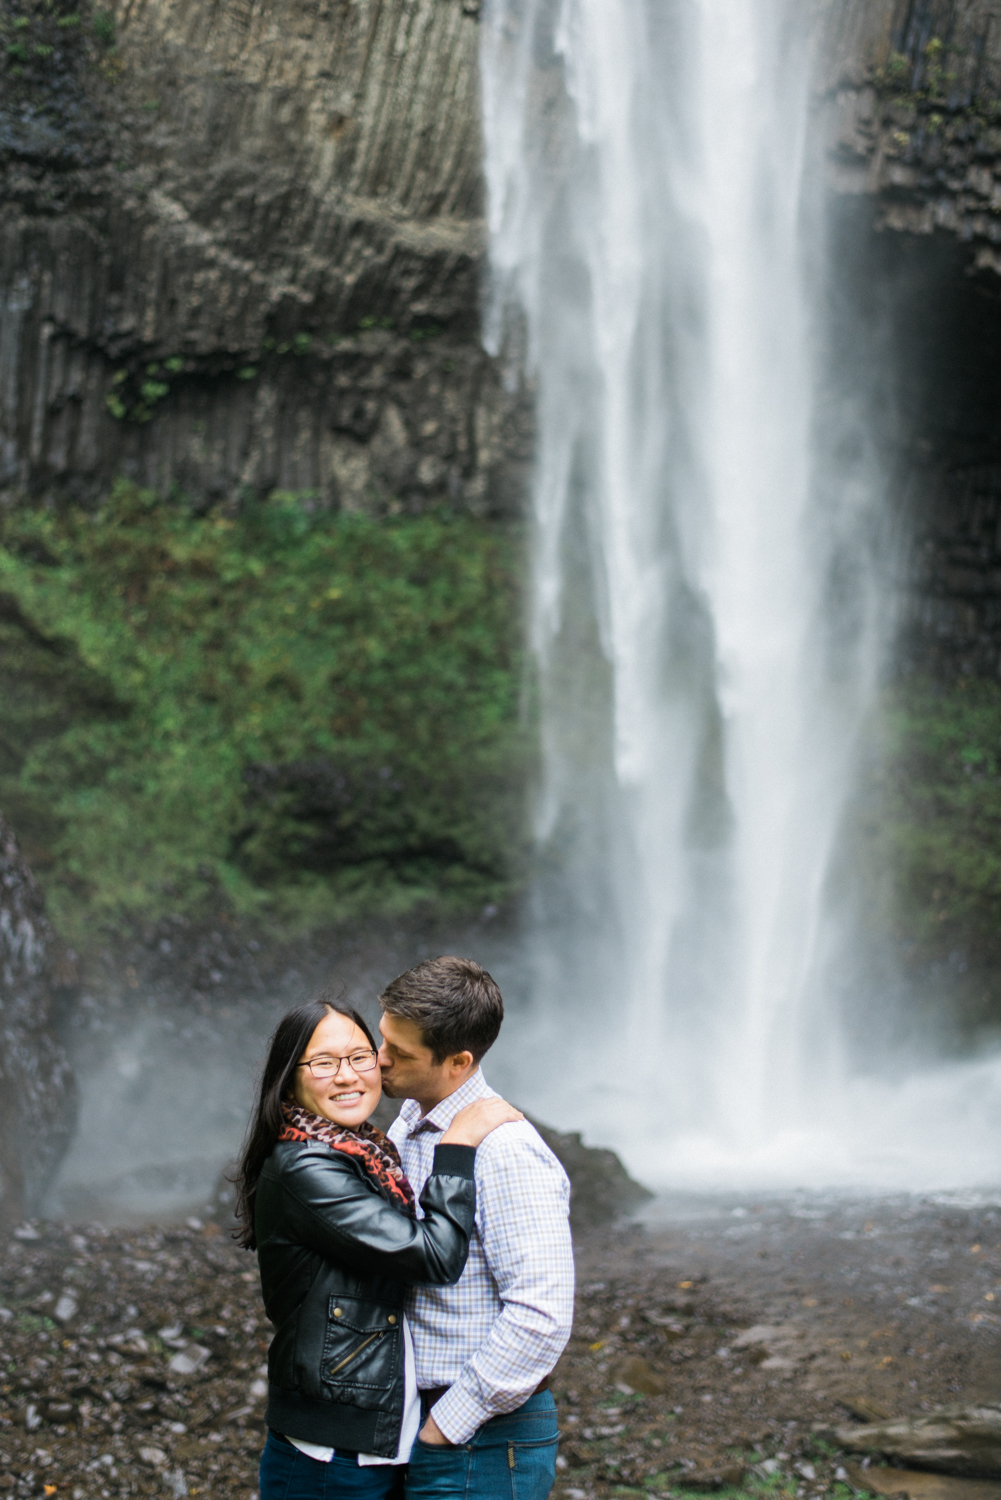 portland-engagement-columbia-river-gorge-latourell-waterfall-autumn-fall-crown-point-shelley-marie-photo-42.jpg